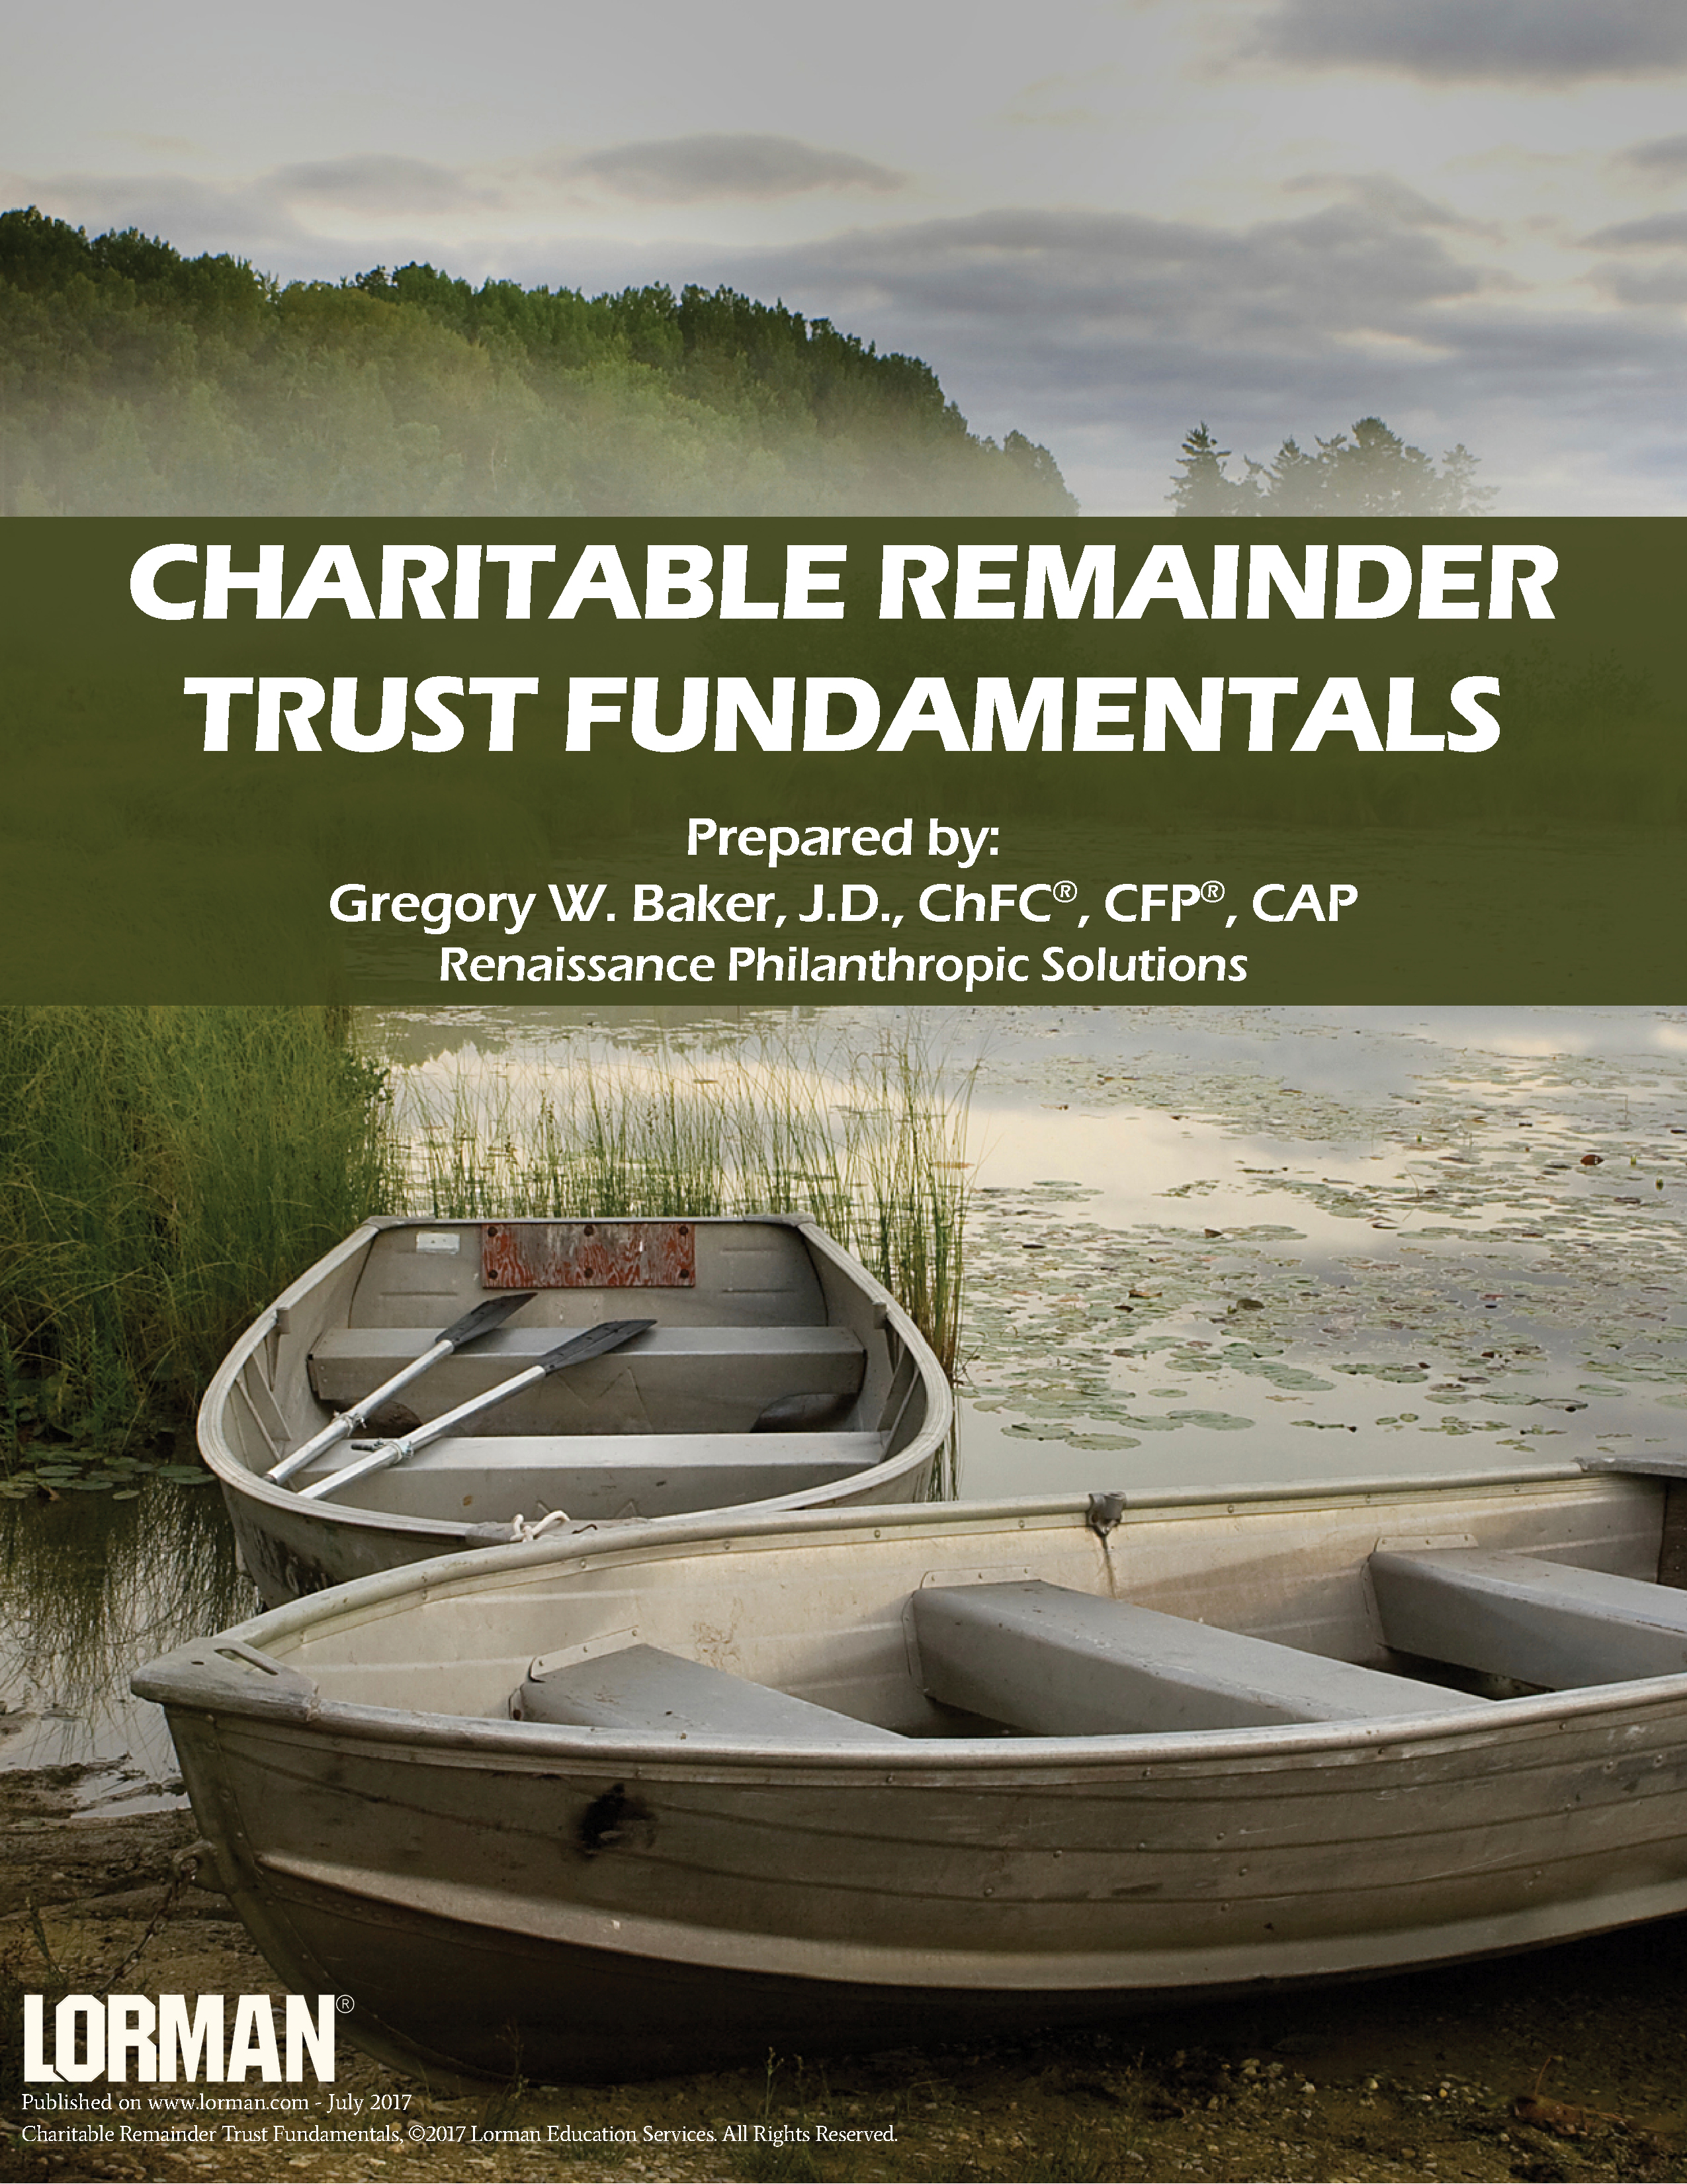 Charitable Remainder Trust Fundamentals